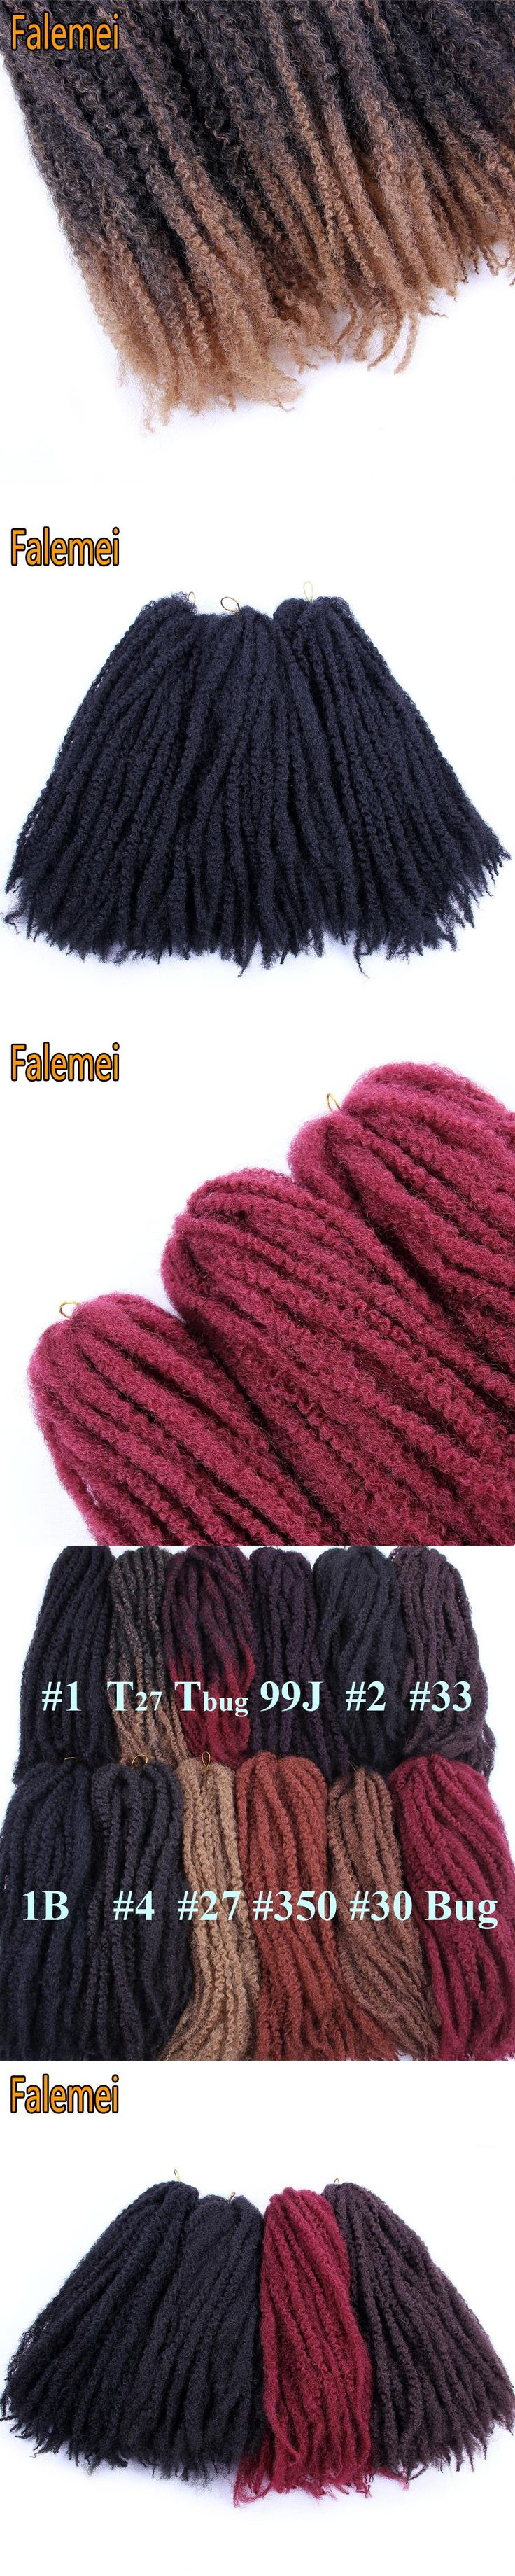 FALEMEI 18inch 100g/pack Synthetic Marley Braids Crochet Hair Afro Twist Braiding Hair Extensions LowTemperature Fiber